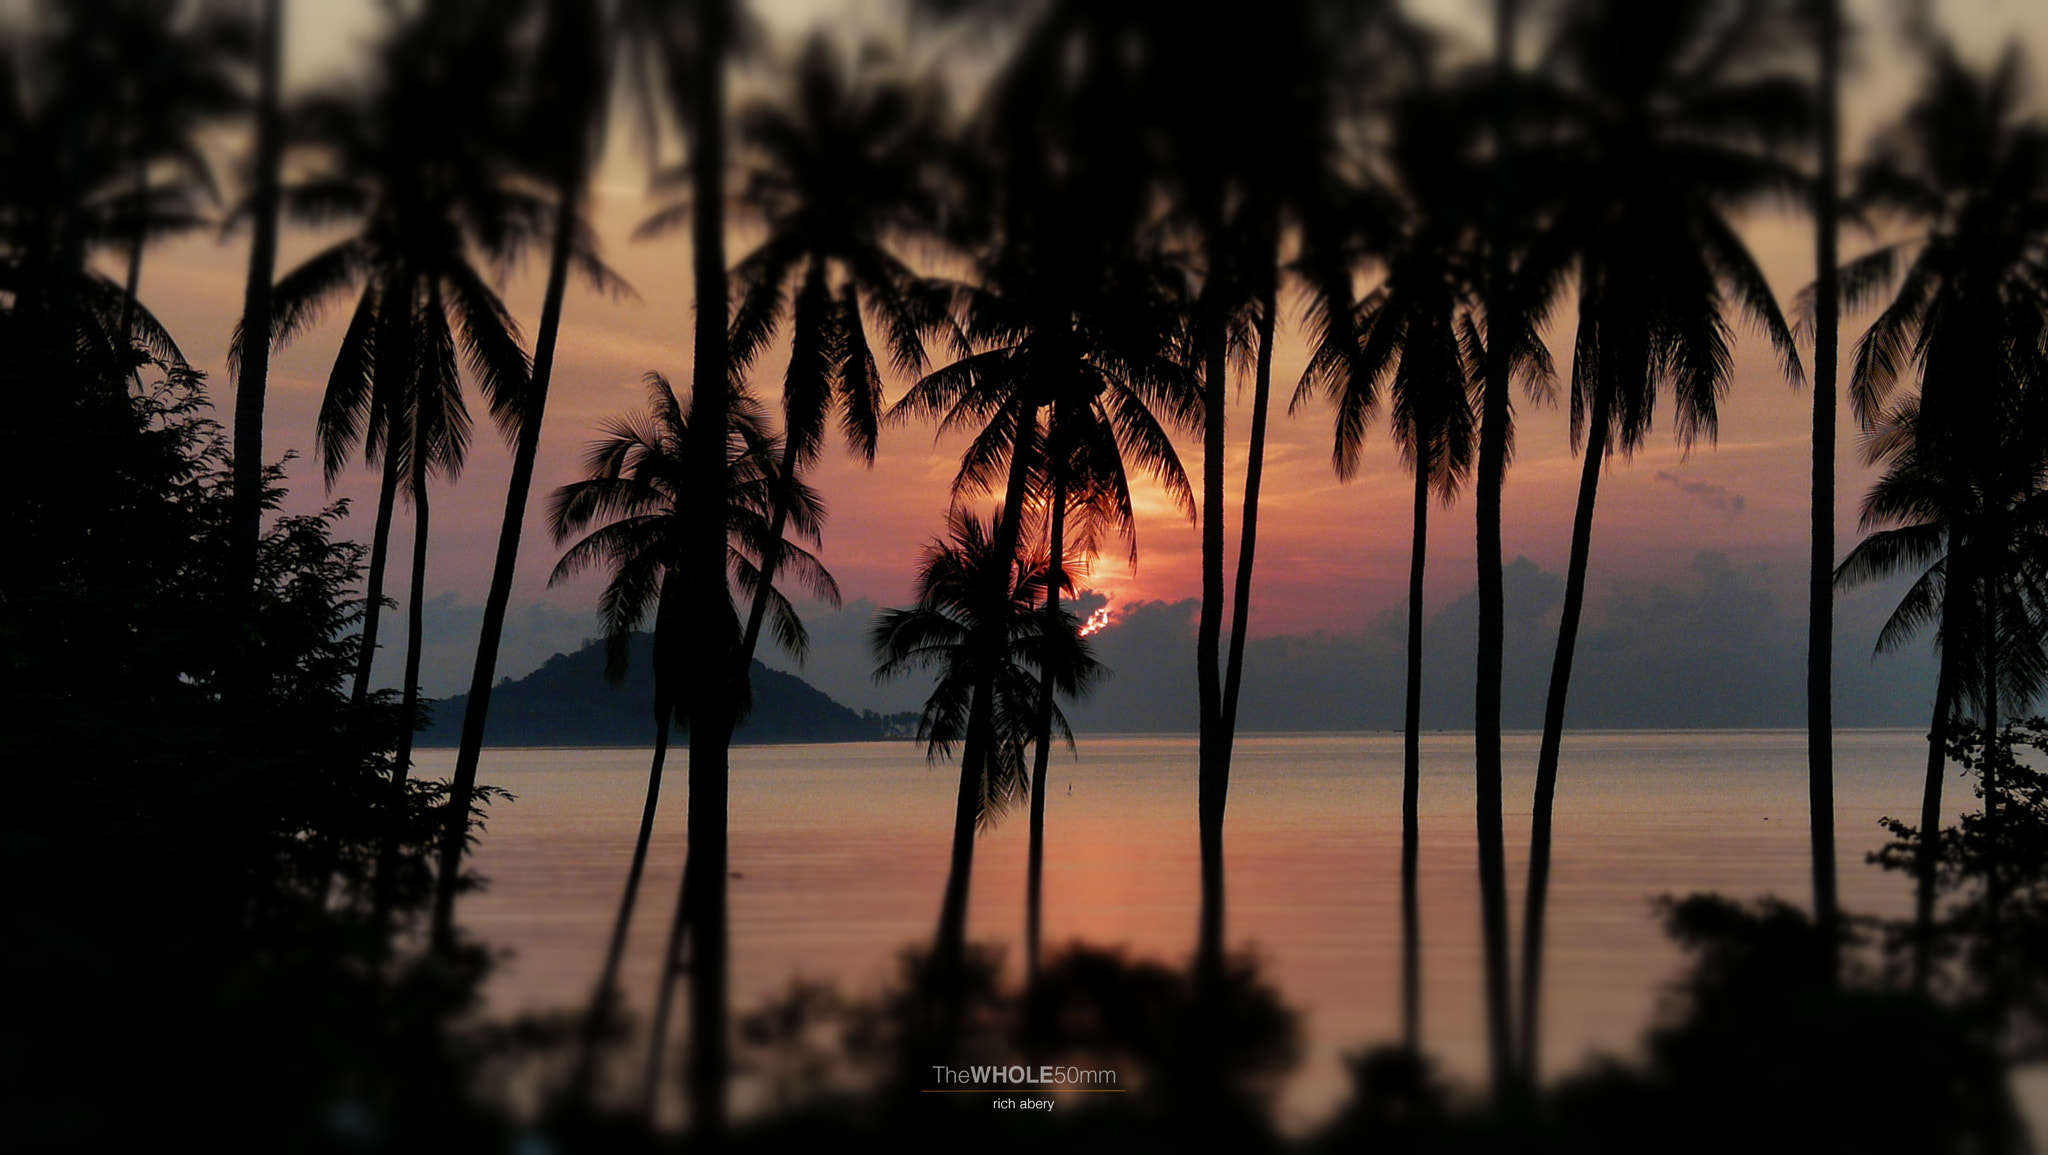 Photograph Paradise by Rich Abery on 500px